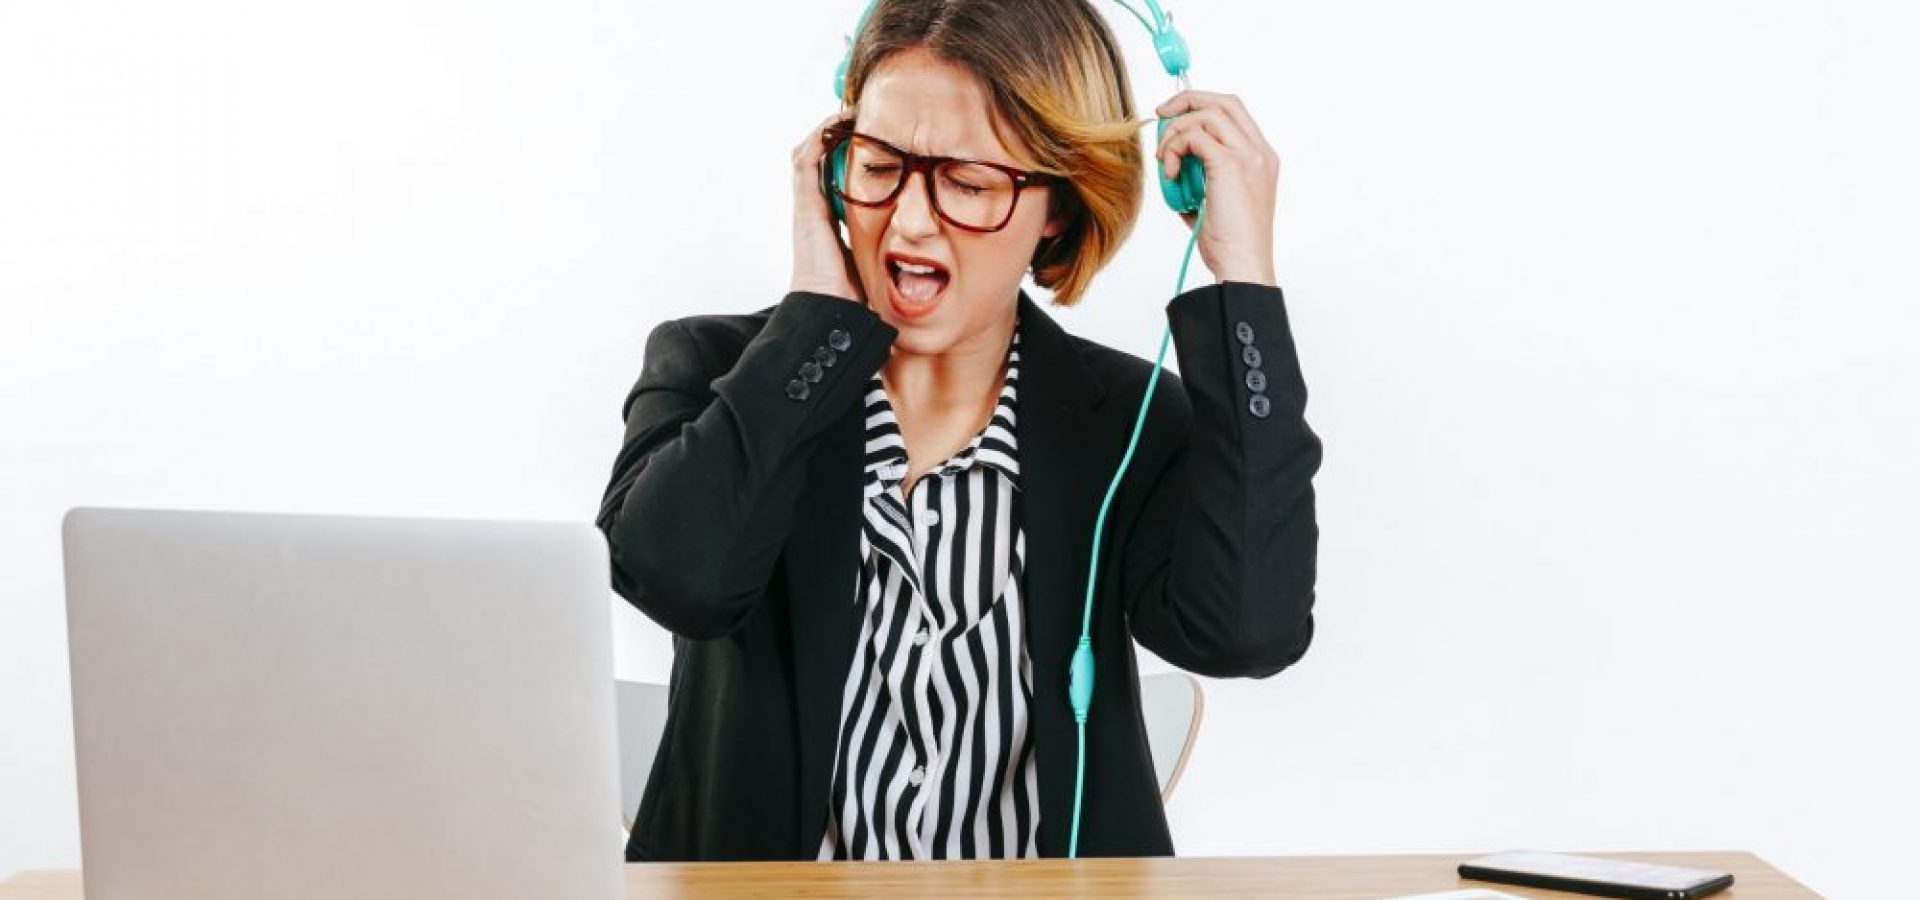 Woman in headphones suffering from loudness